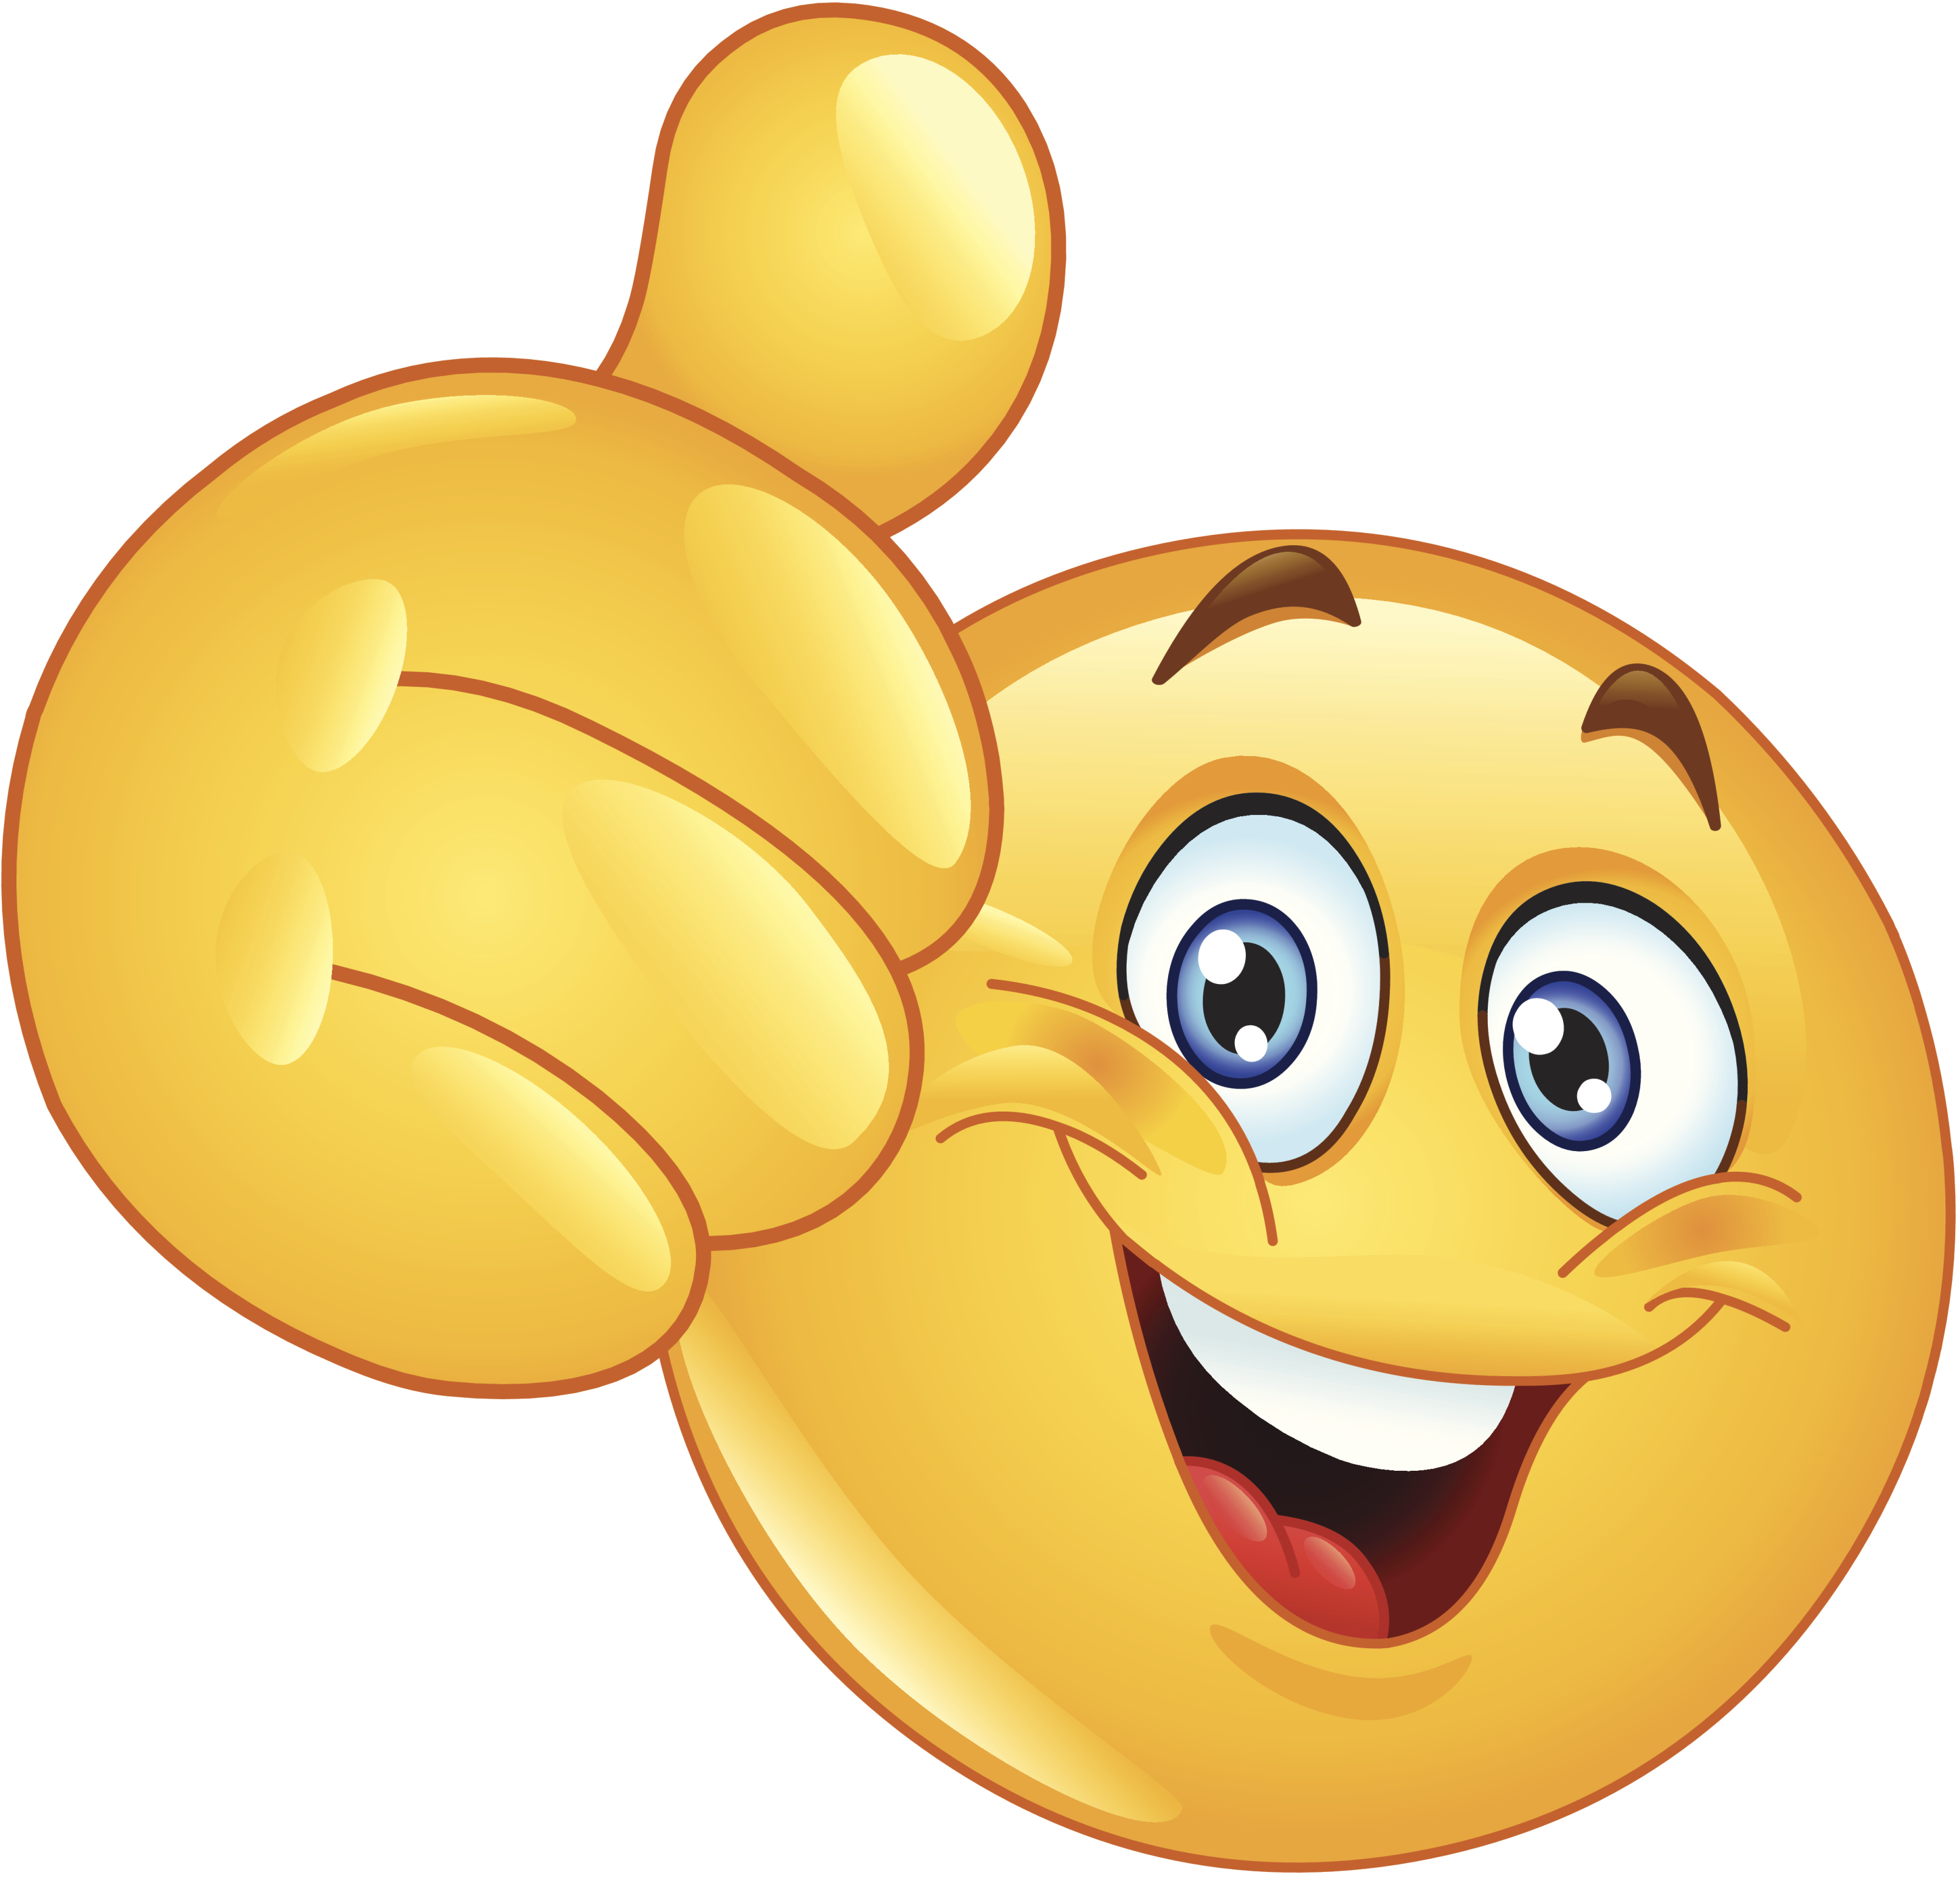 Clipart smiley face thumbs up clipart royalty free download Clipart smiley animation - ClipartFest clipart royalty free download